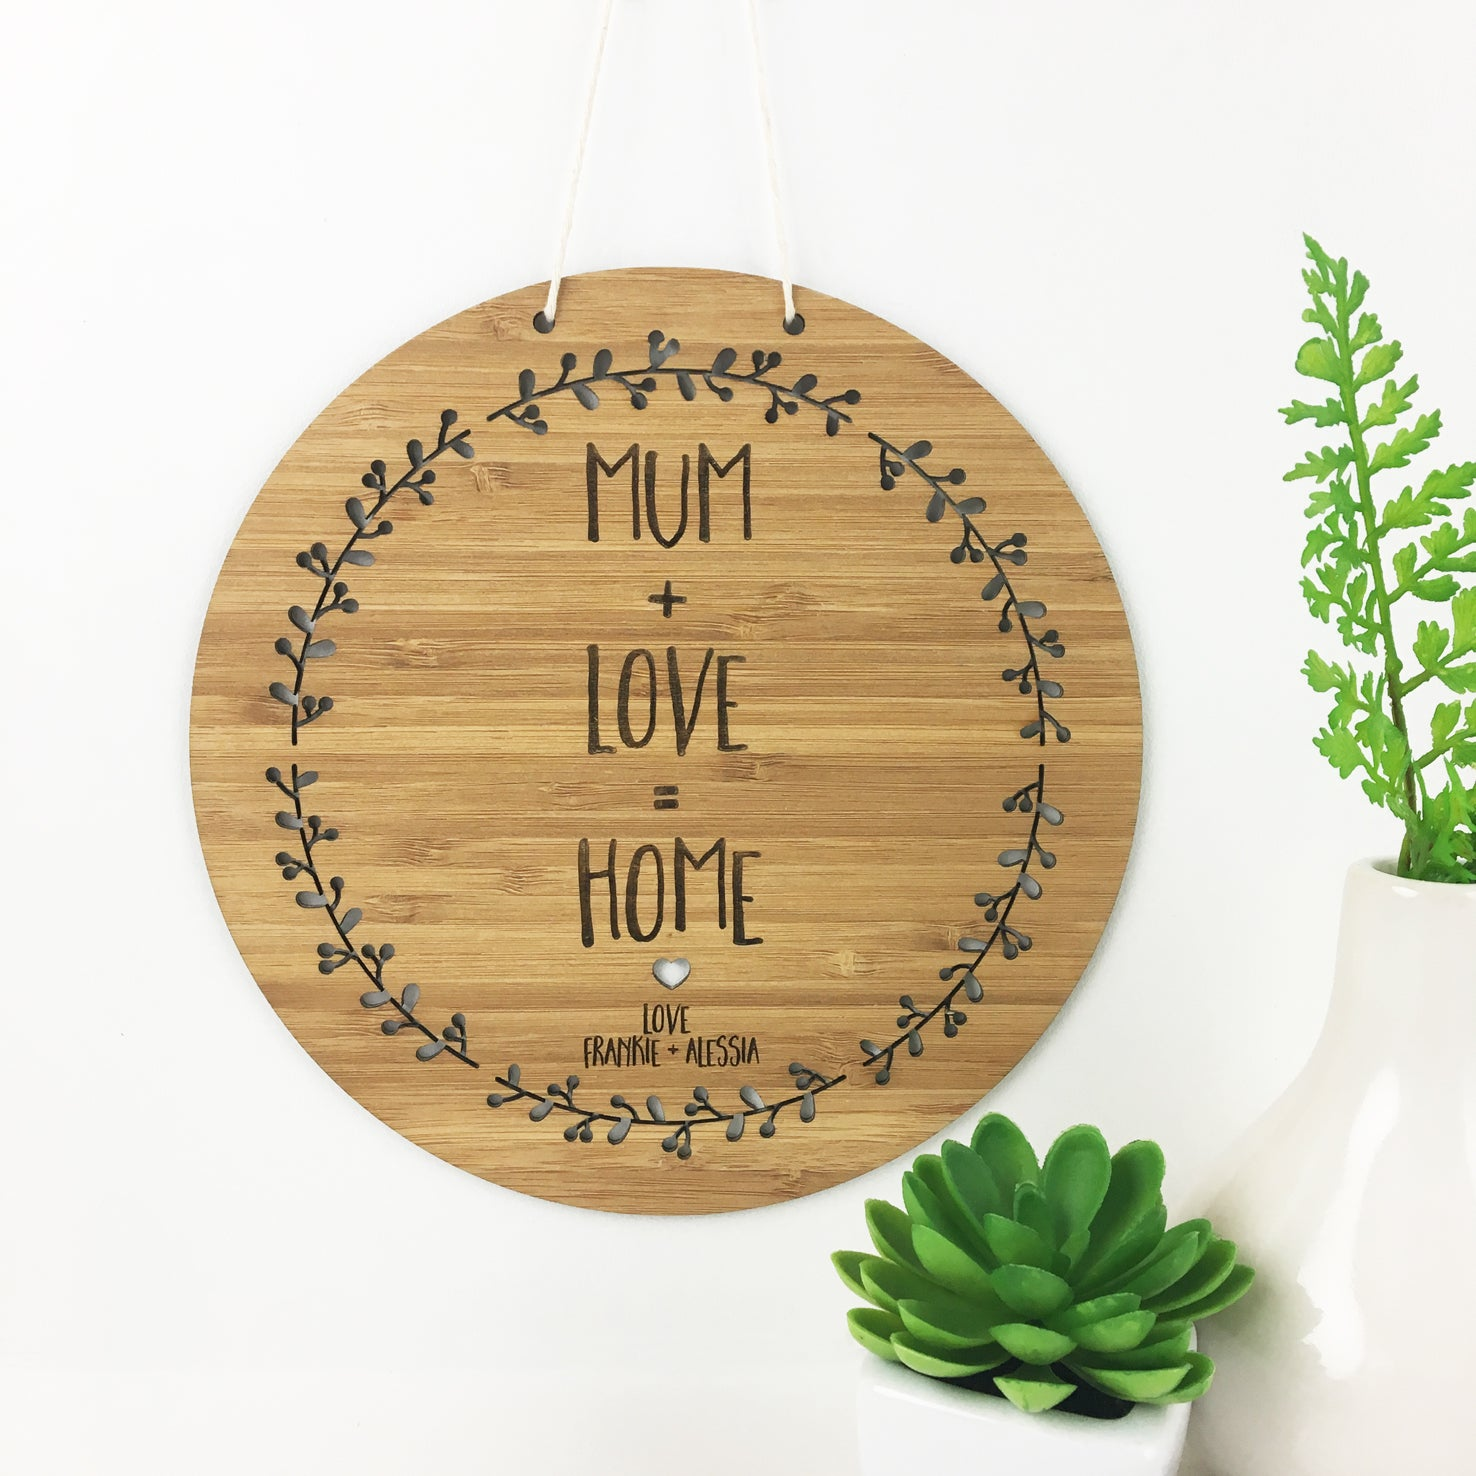 Mum + Home + Love Wall Hanging